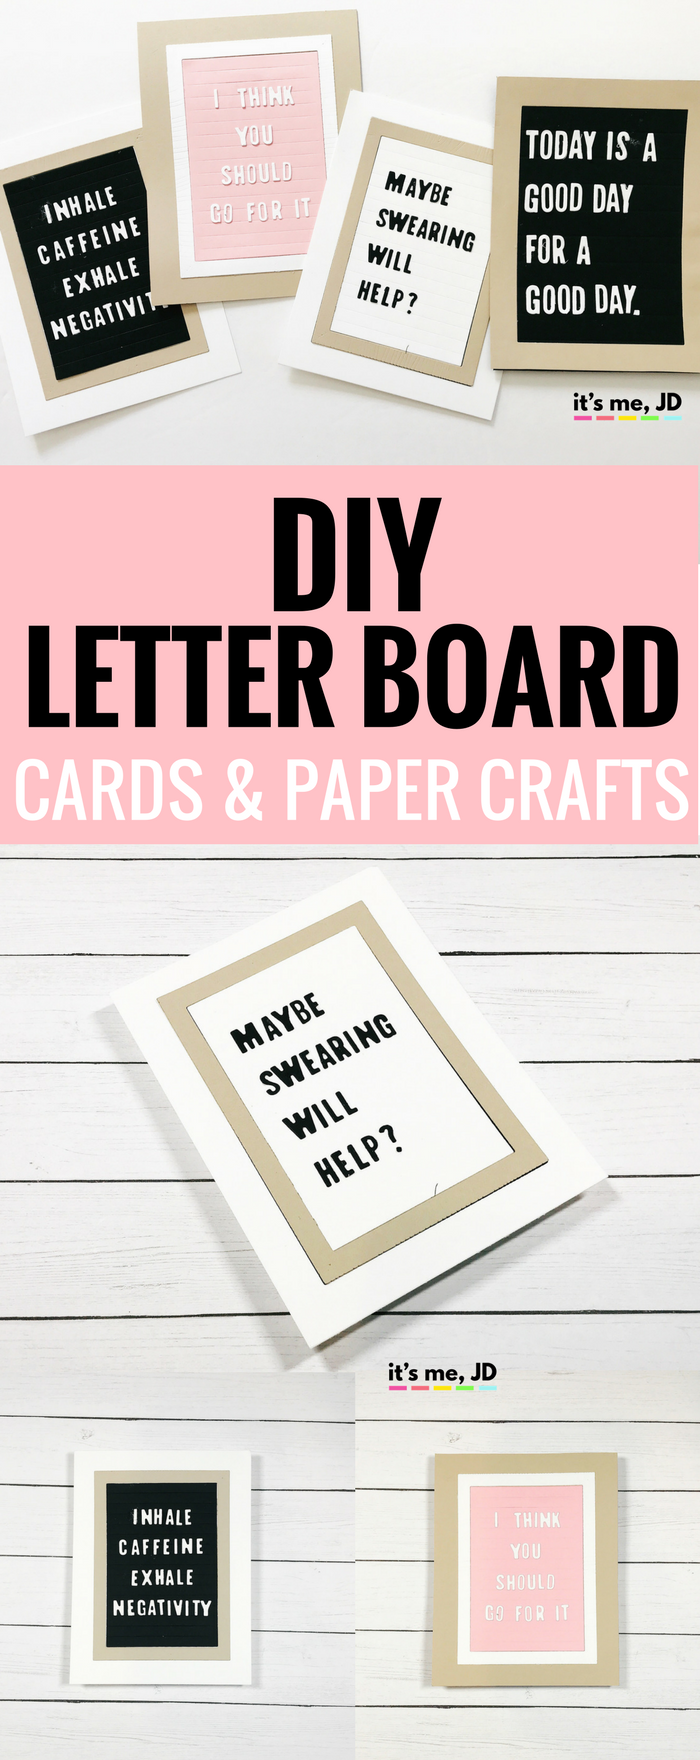 #letterboard DIY Letter Board Card and Paper Crafts Ideas Quotes